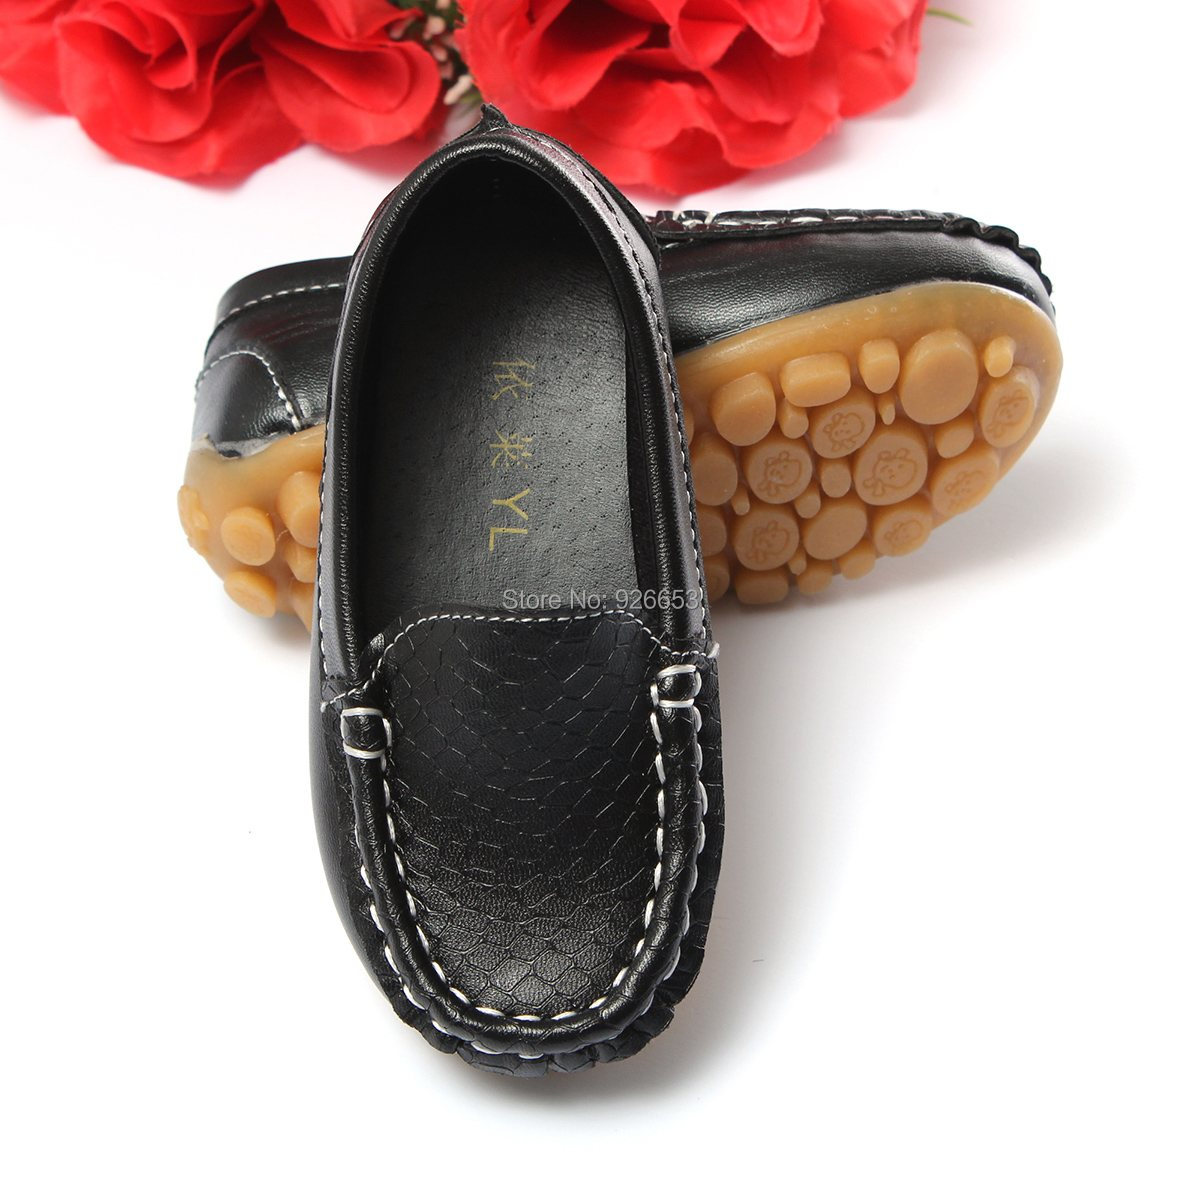 New Fashion Size 21-25 Children Kids PU Leather Sneakers For Boys And Girls Boat Shoes Slip On Soft Sole Casual Flats(China (Mainland))